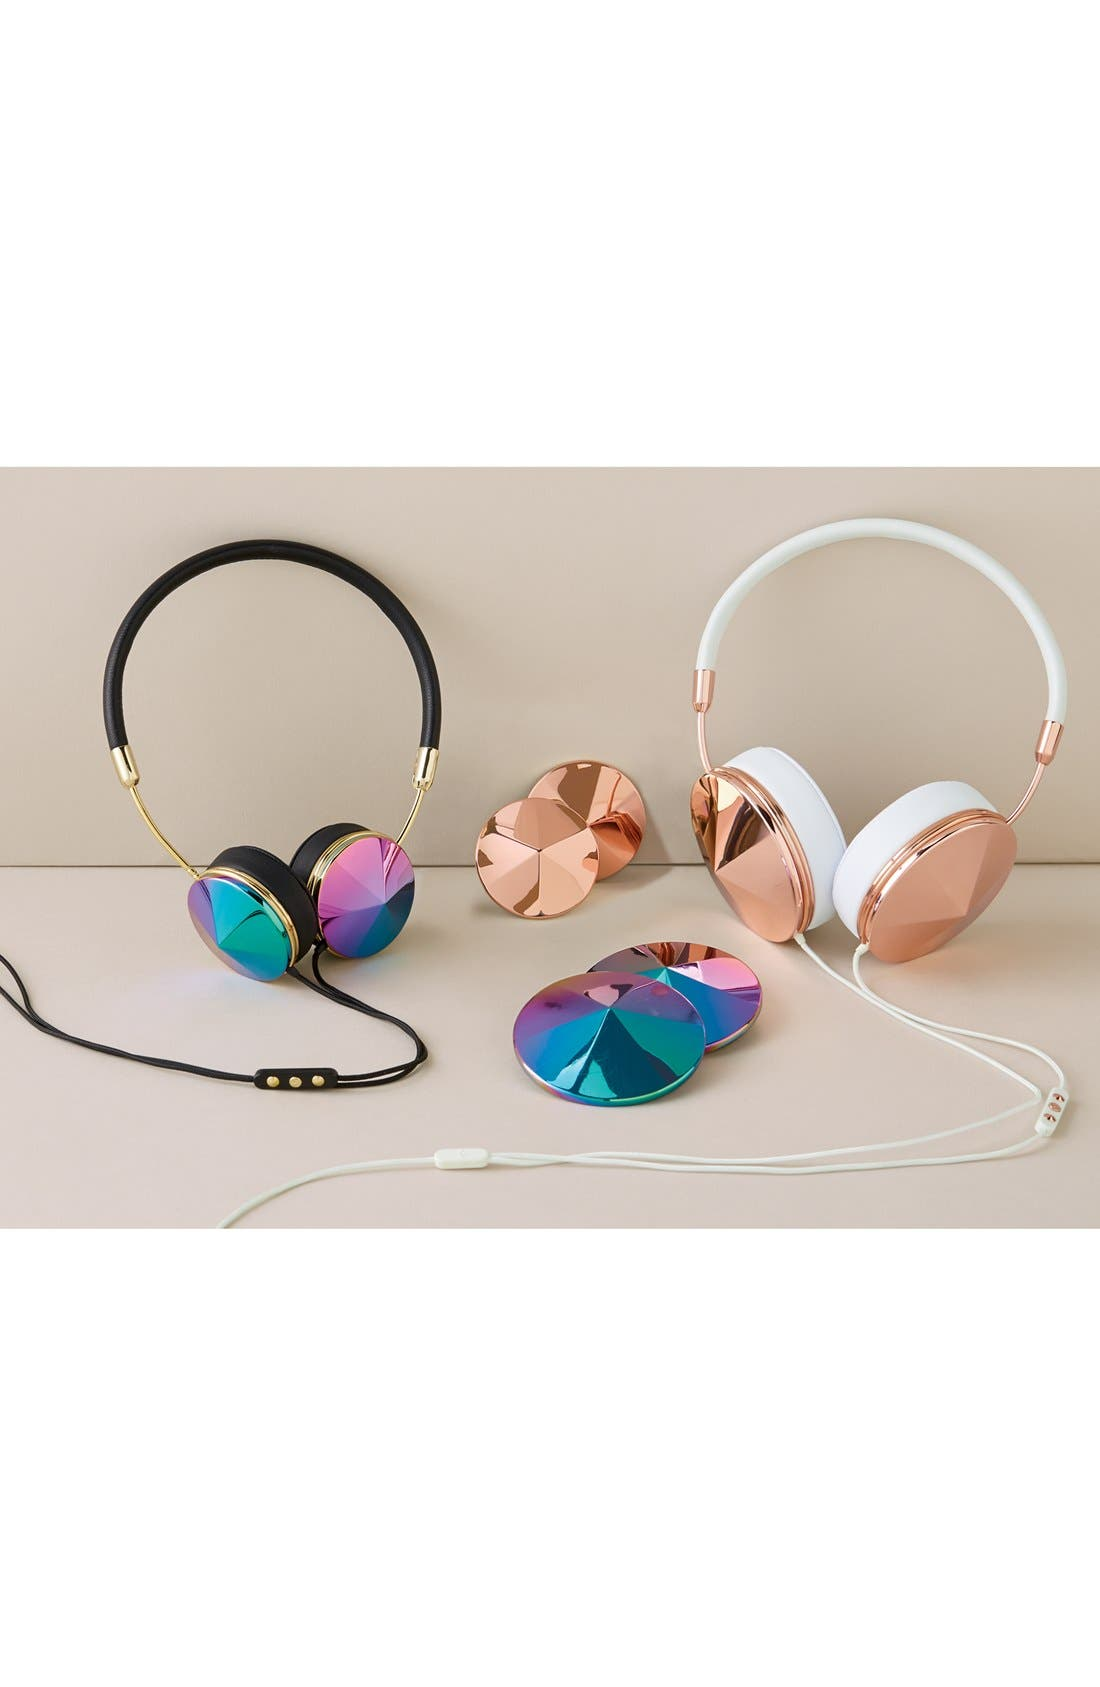 with Benefits 'Taylor' Headphones,                             Alternate thumbnail 6, color,                             220